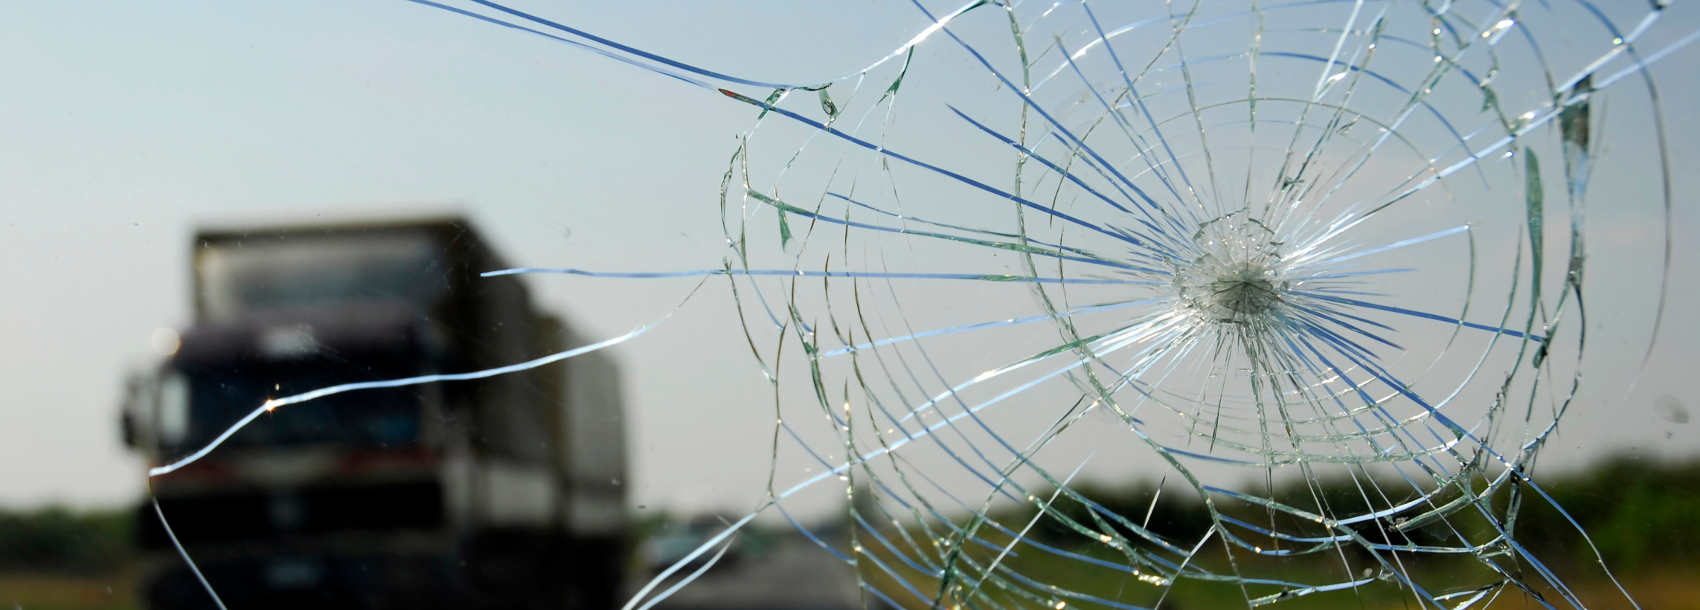 affordable windshield repair in oklahoma city ok - Auto Glass Repair Tulsa Ok